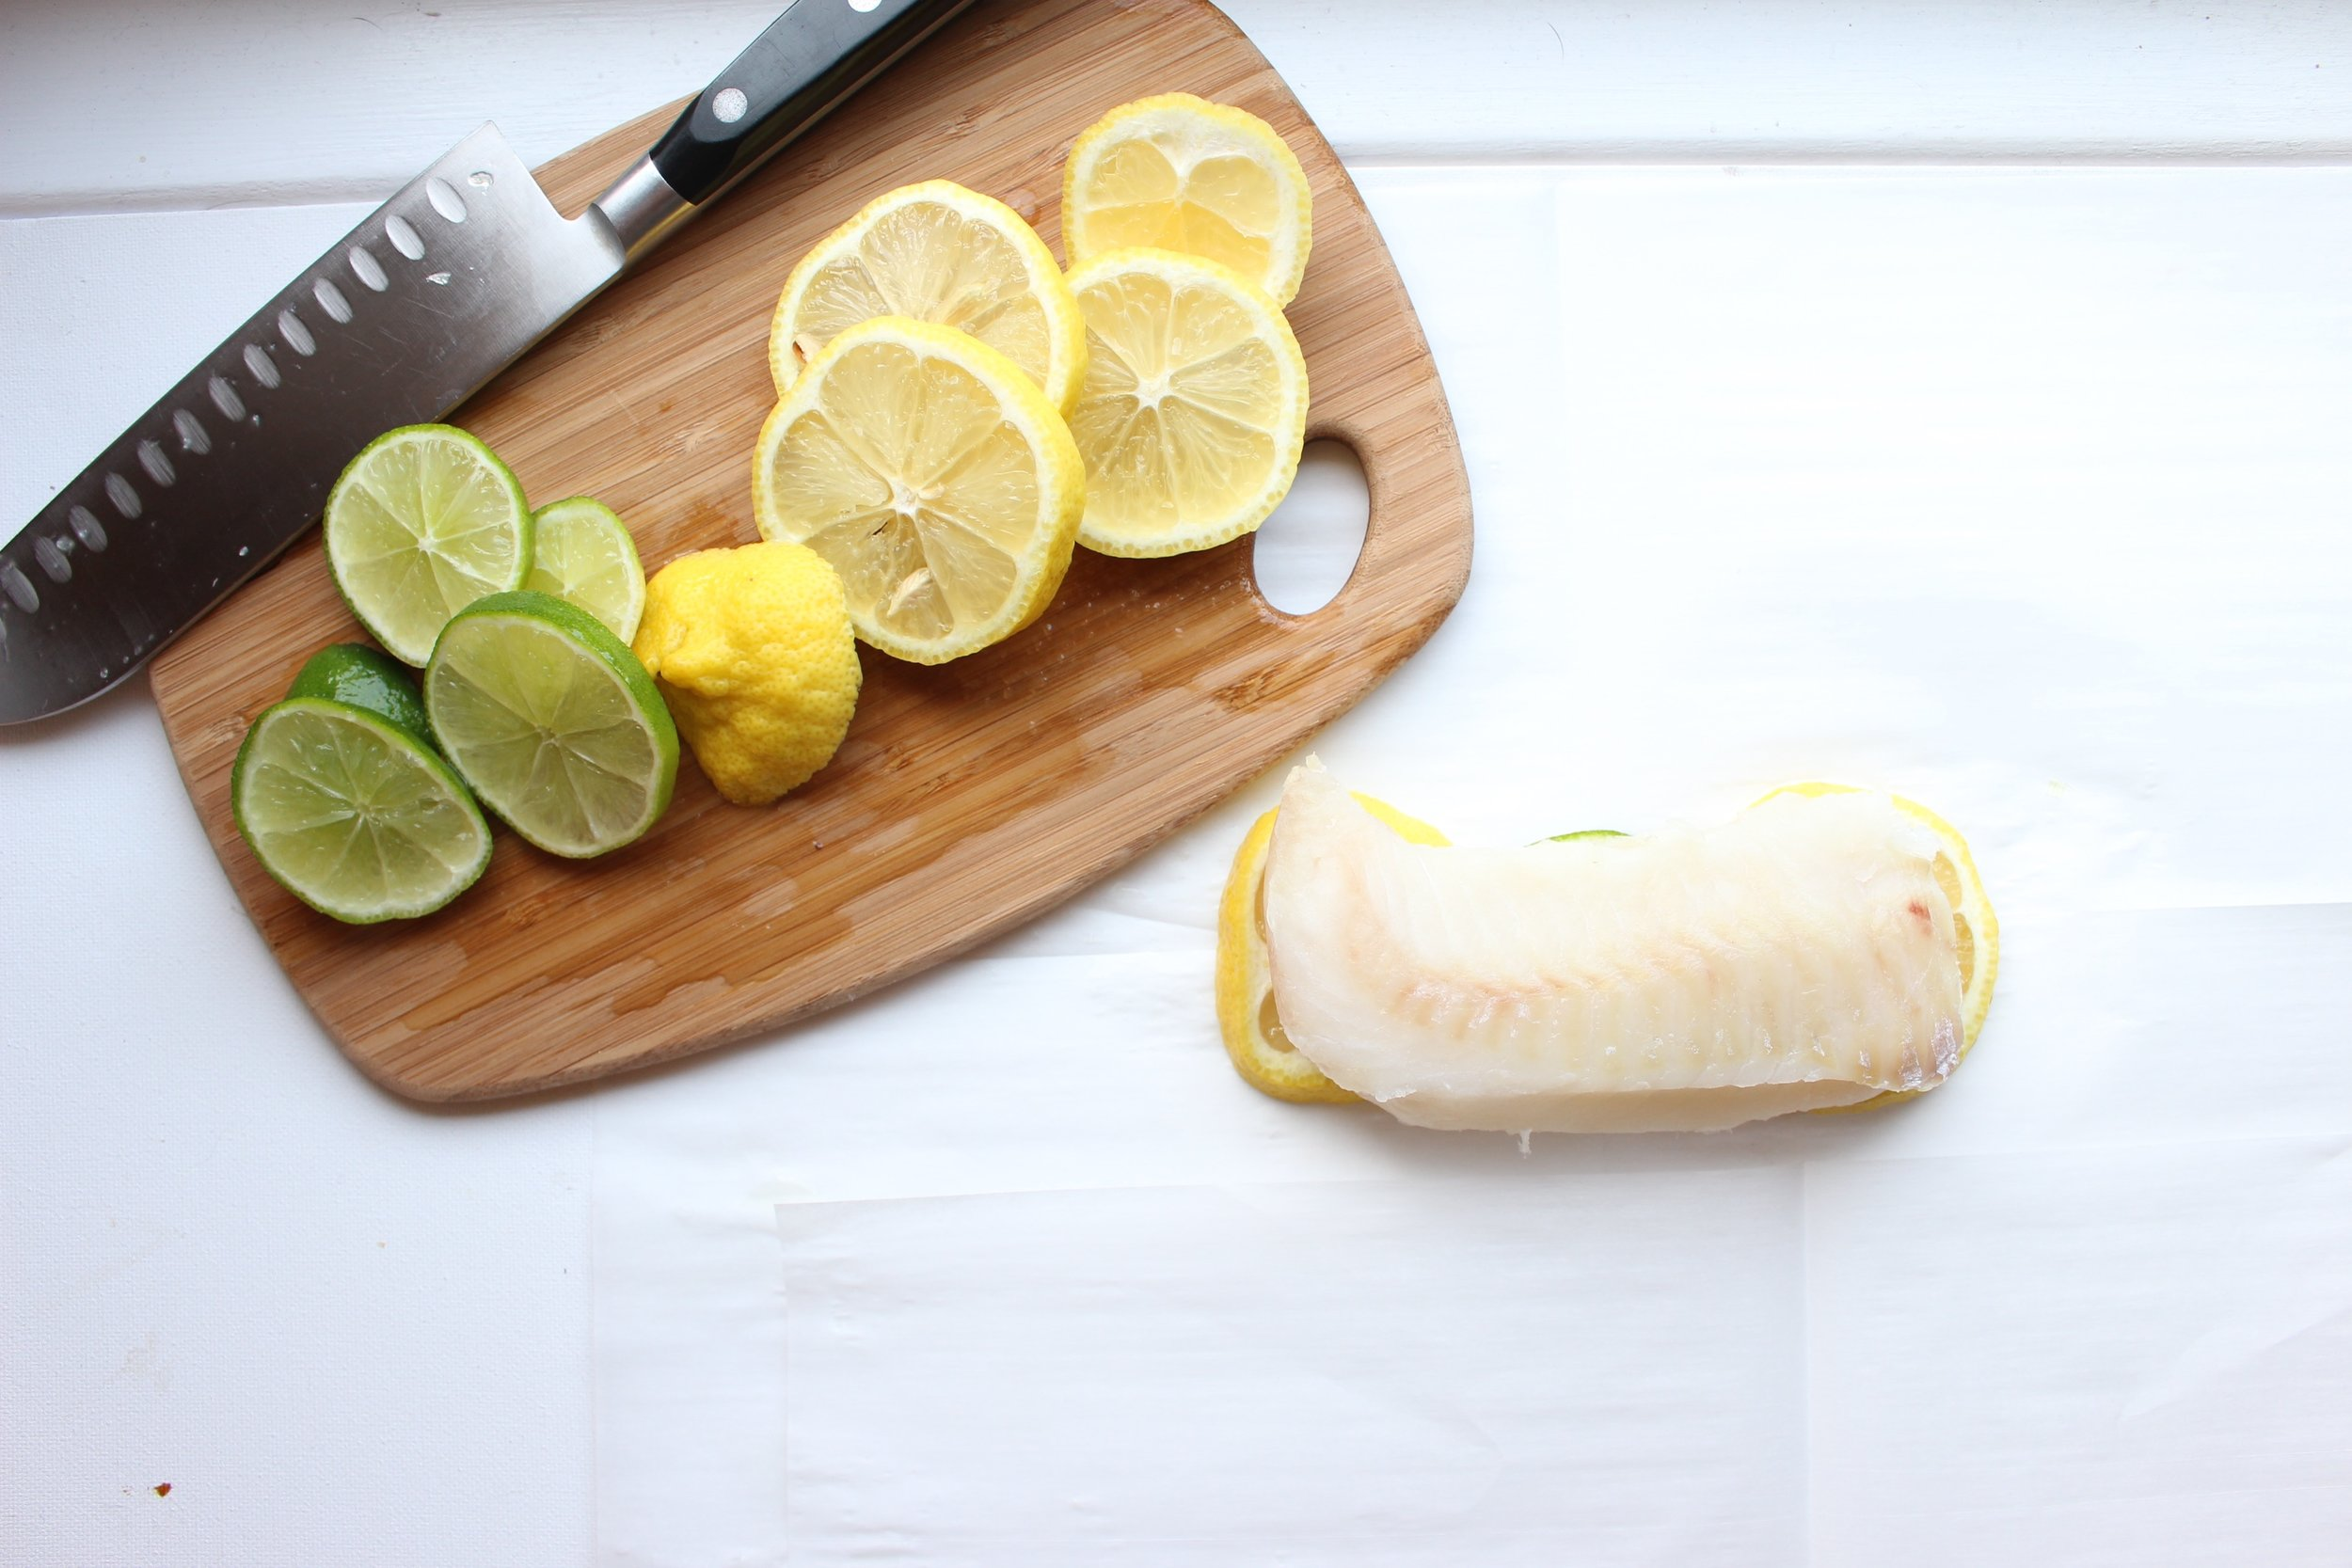 The white fish roasts on a bed of lemons and limes.